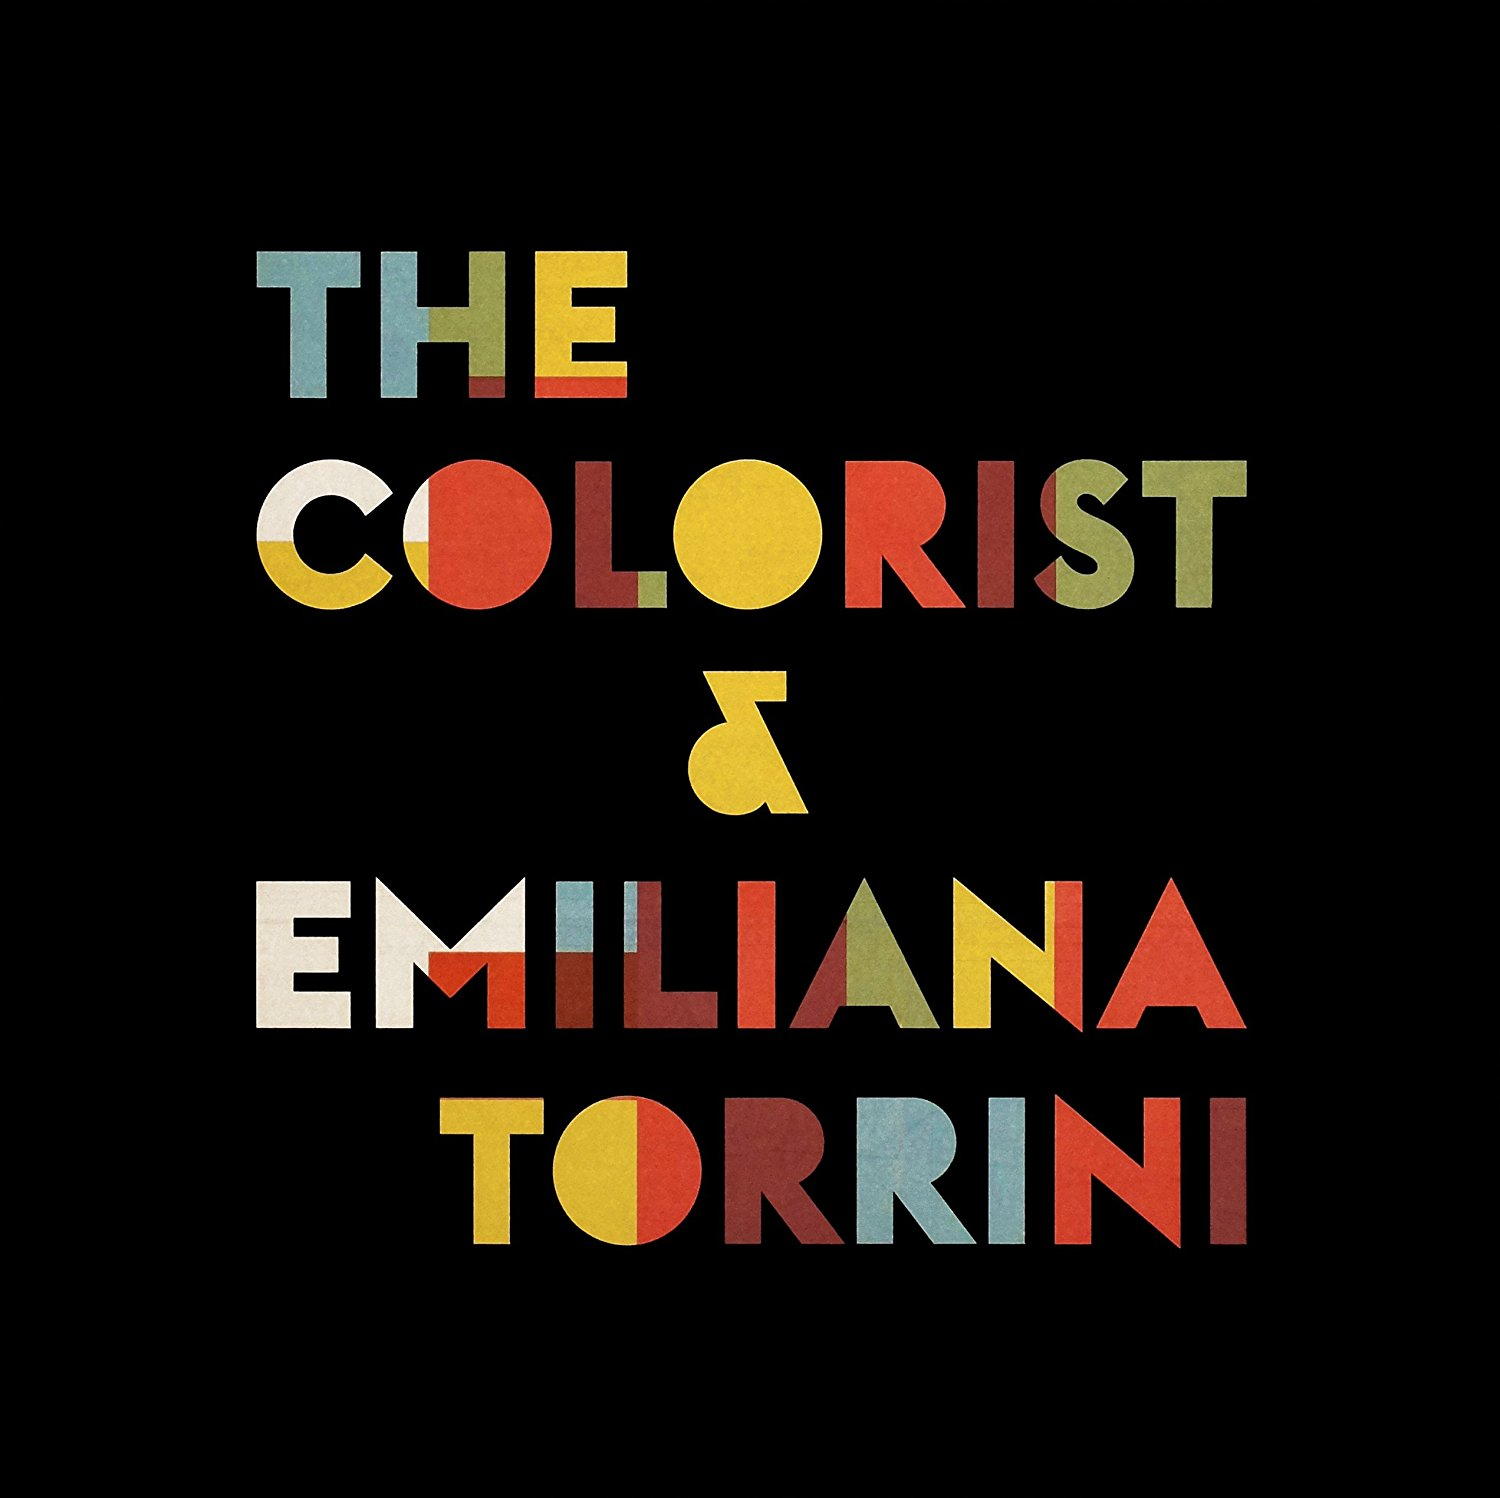 emiliana torrini the colorist